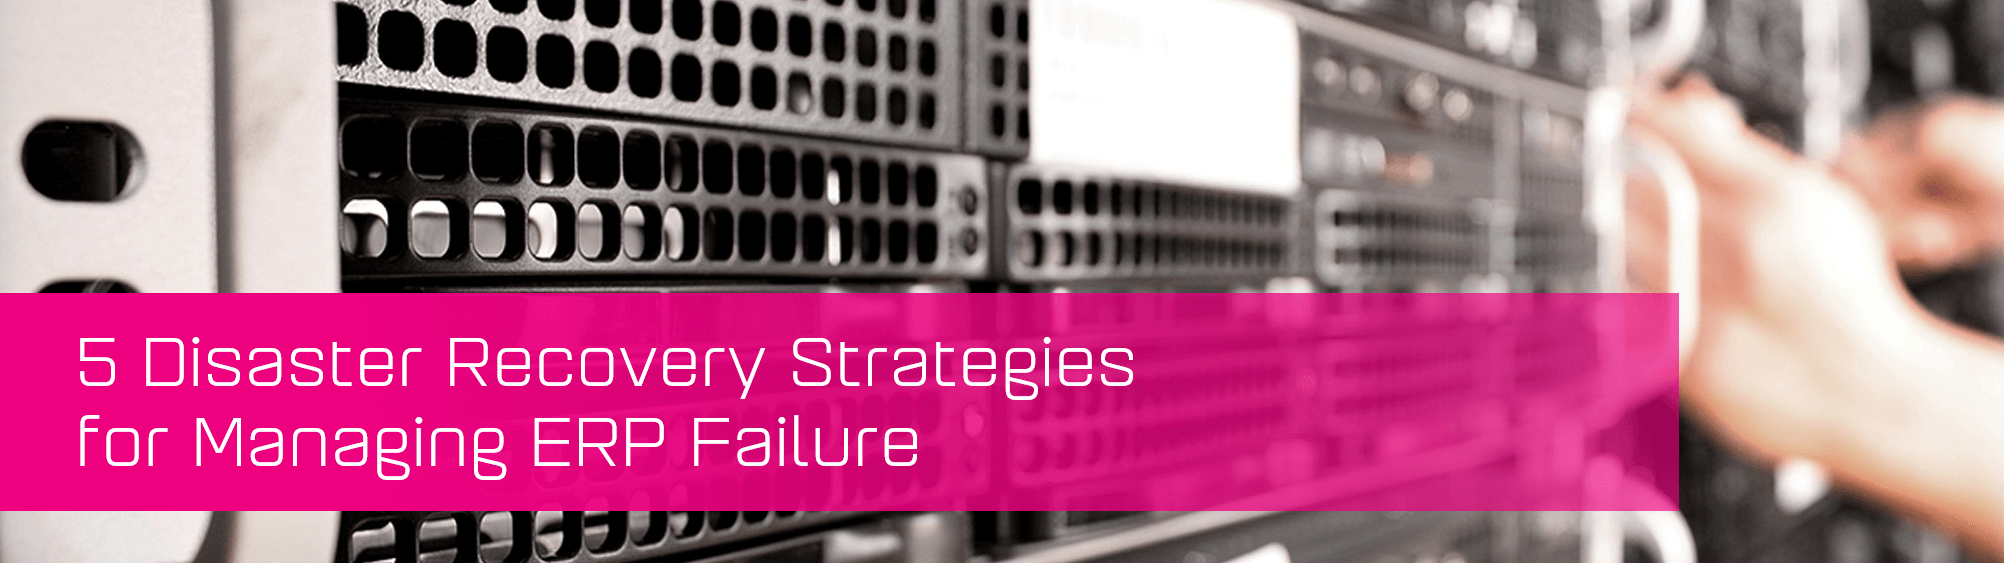 KCS SA - Blog - 5 disaster recovery stategies for managing ERP failure 2